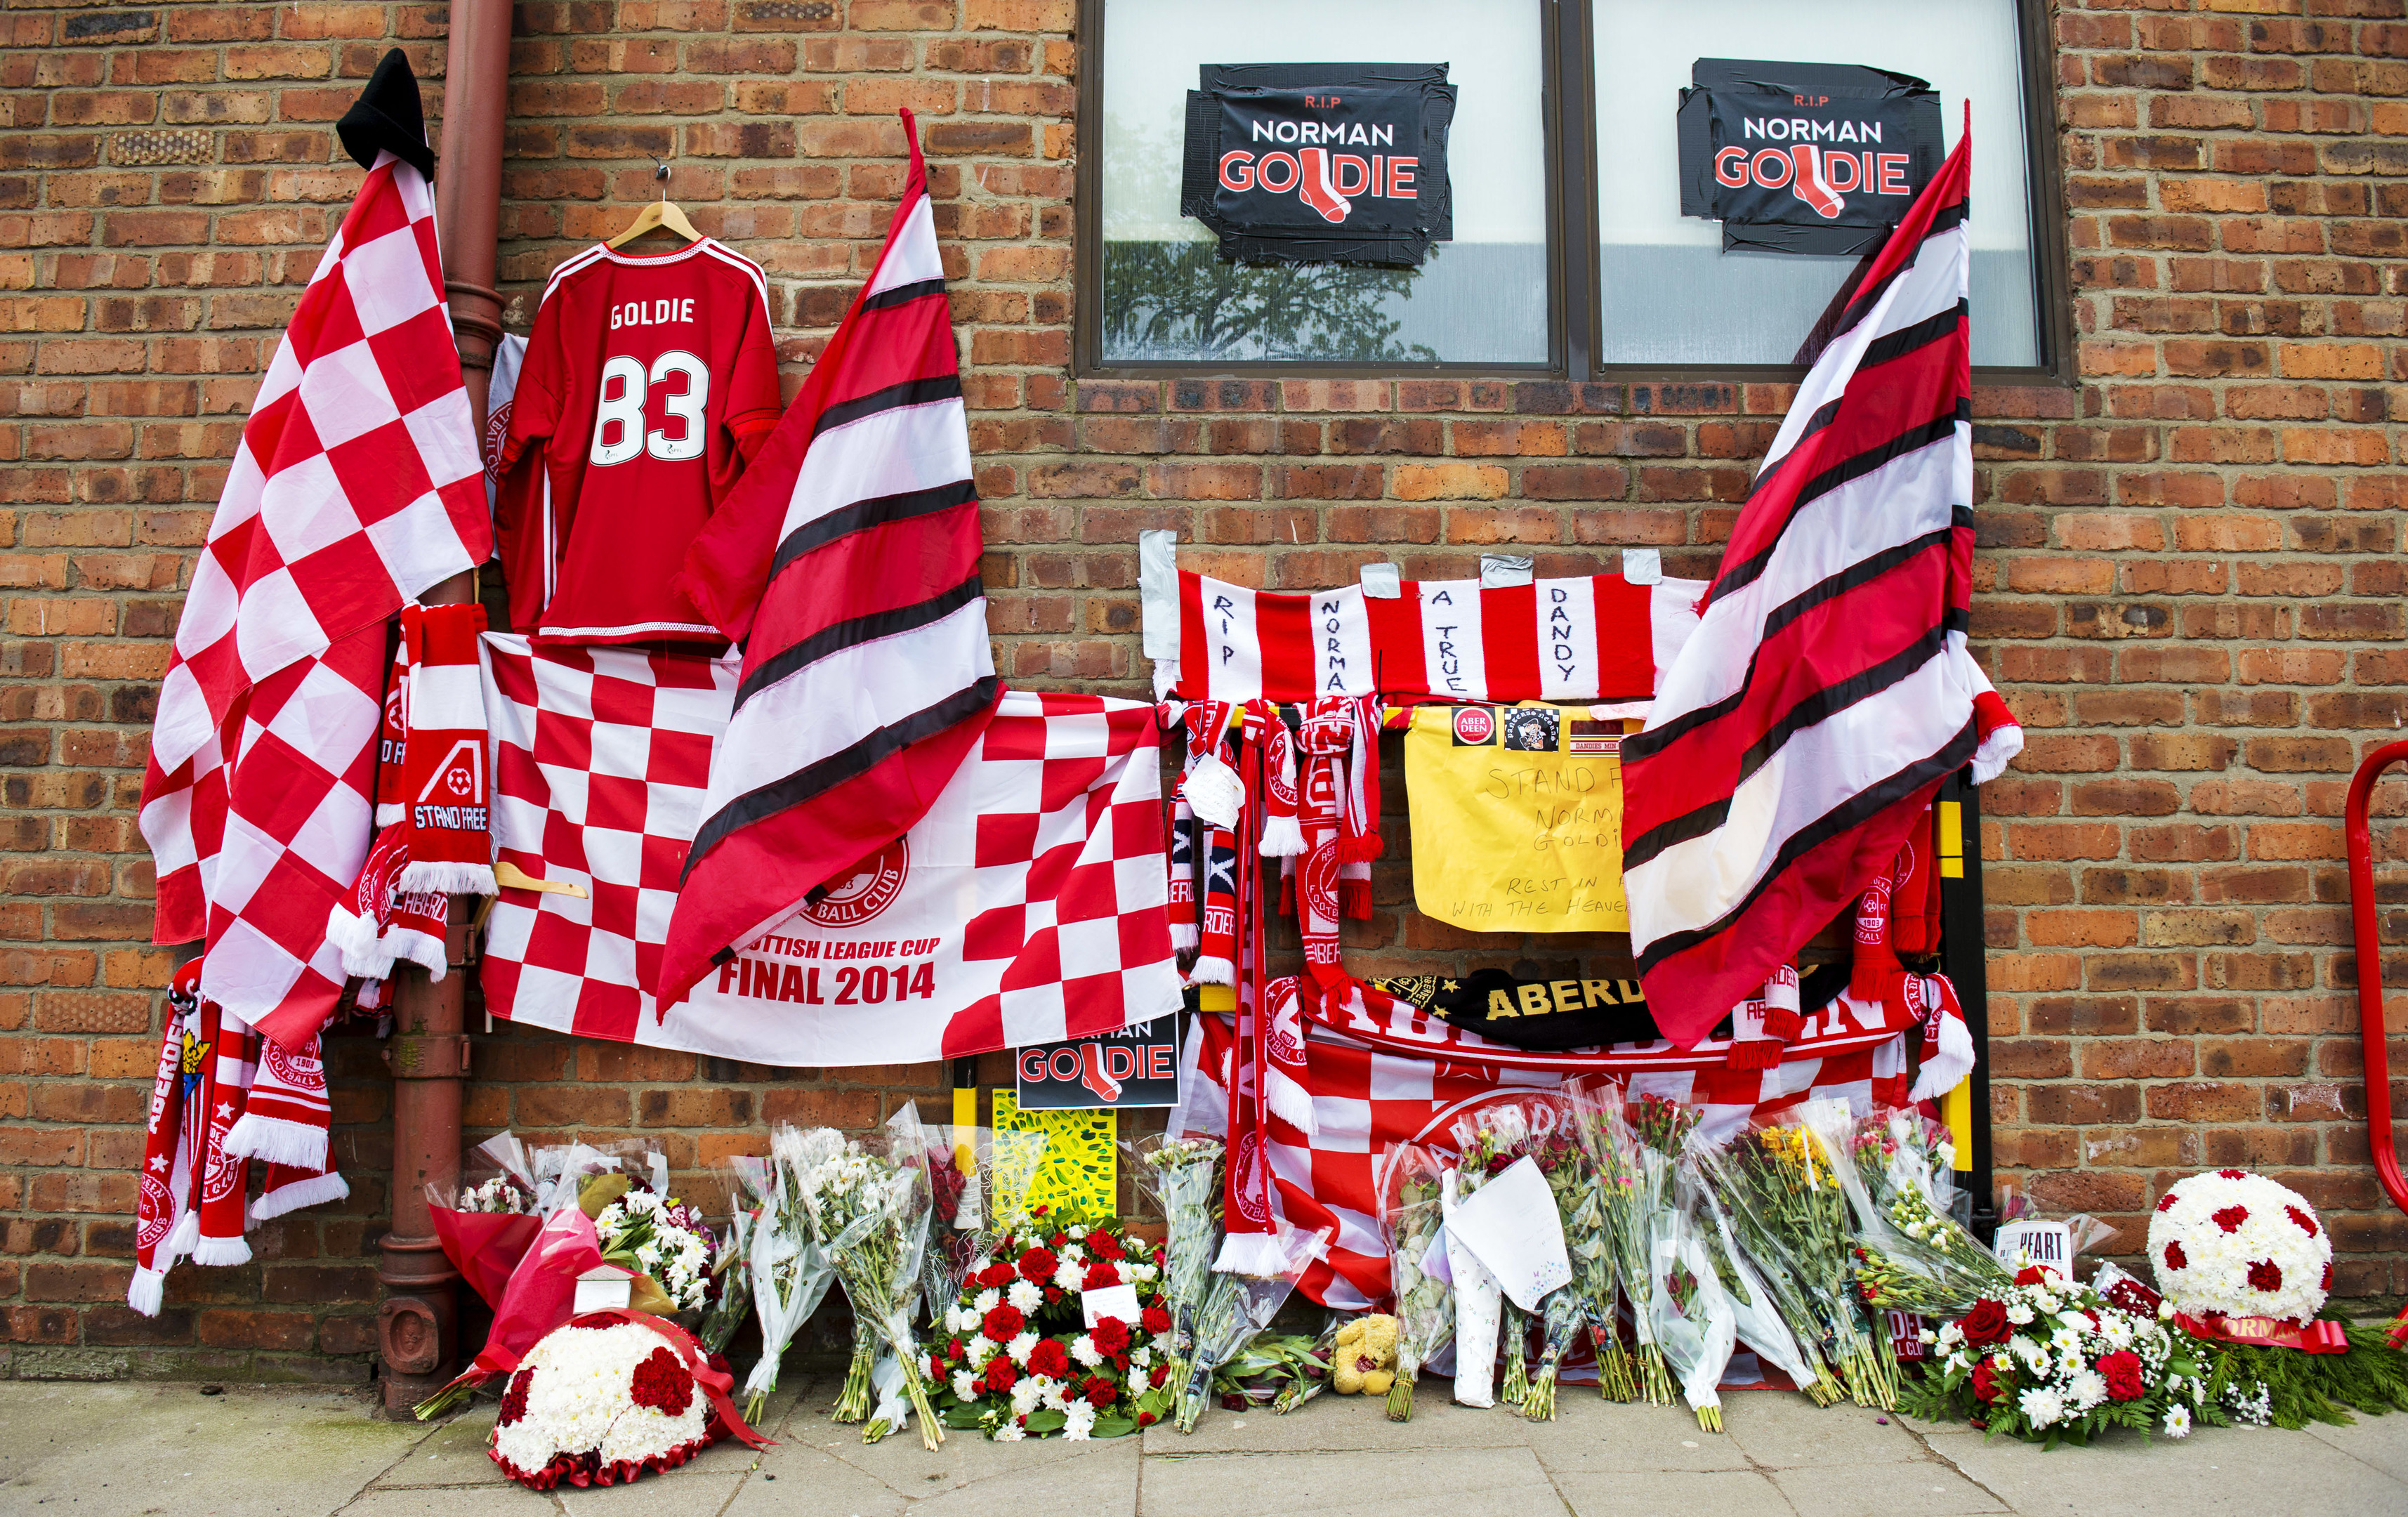 Tributes to Aberdeen fan Norman Goldie